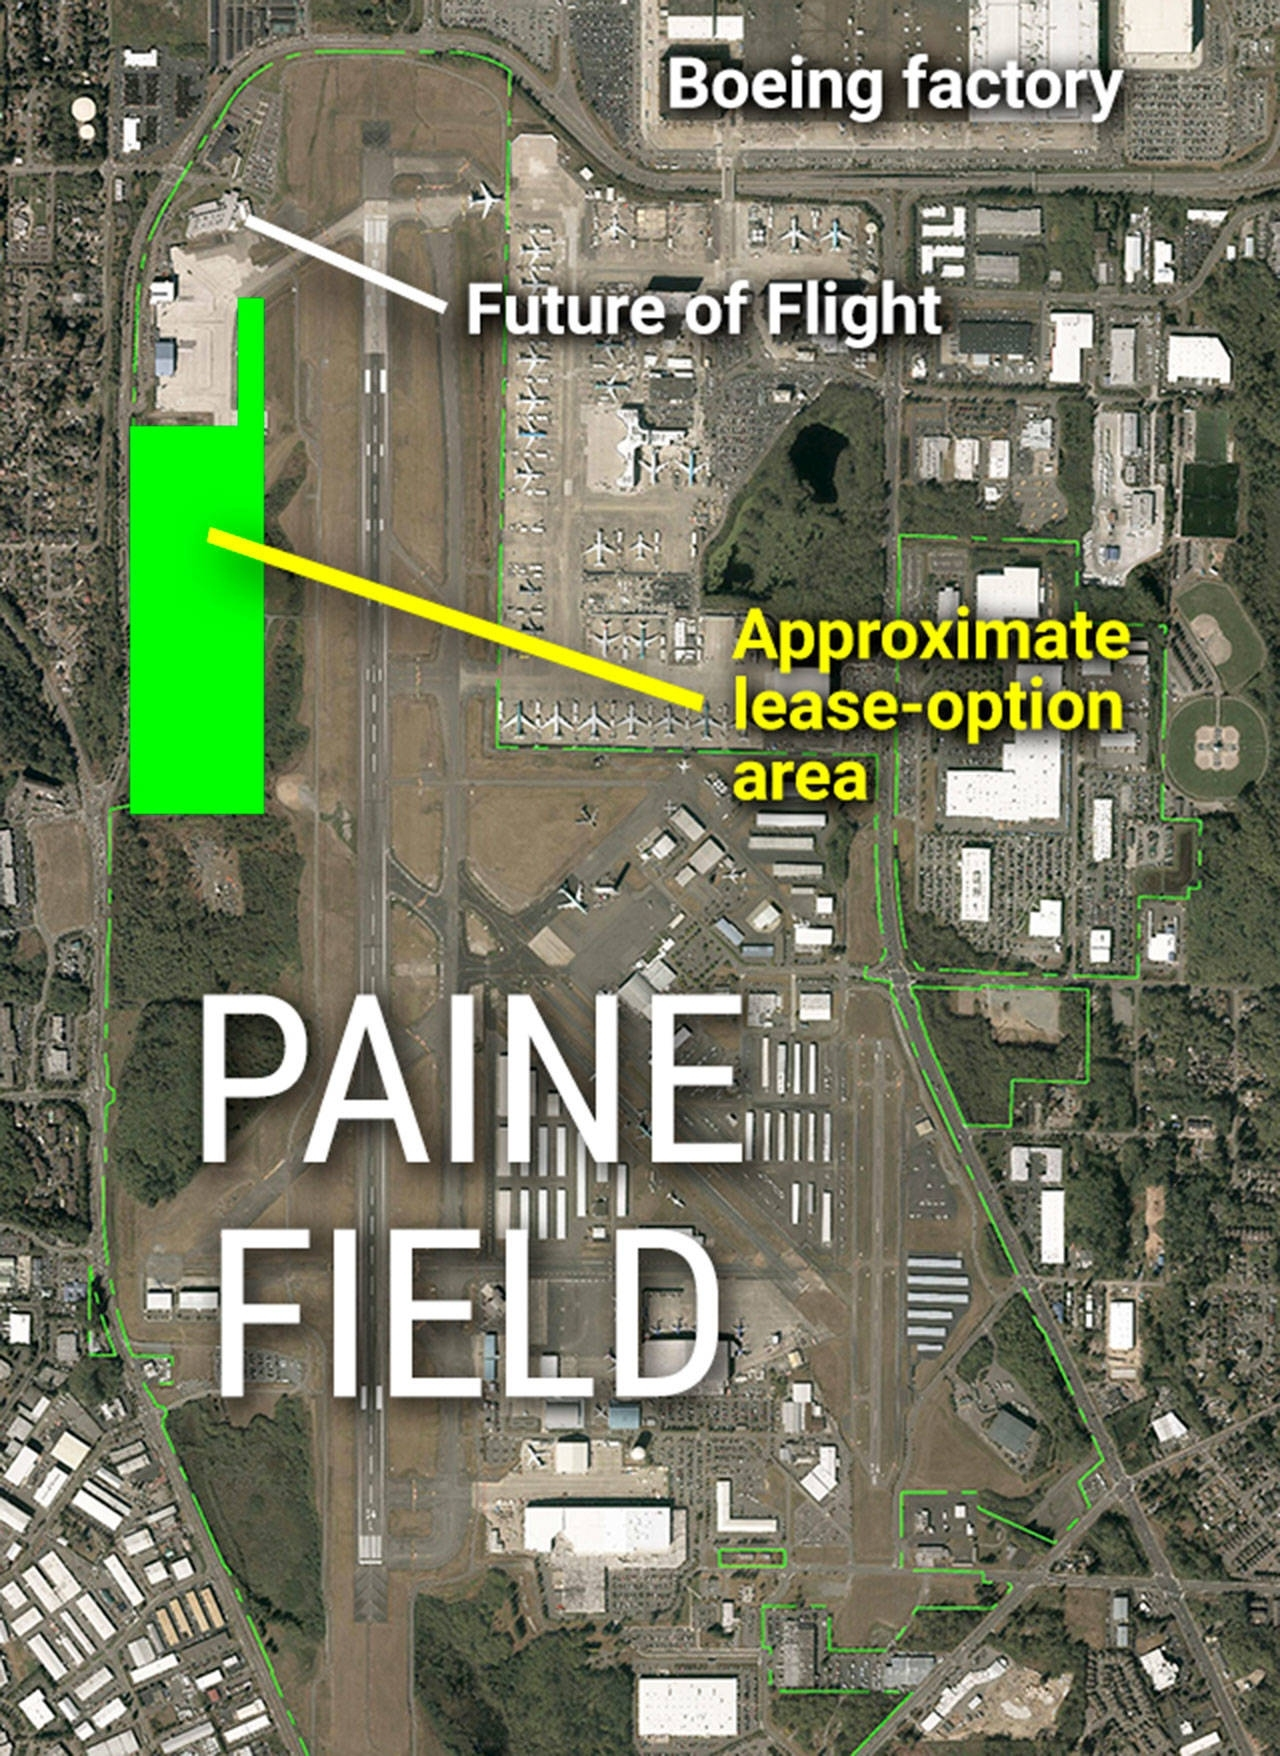 Snohomish County Works To Boost Development Around Airports intended for Boeing Factory Map